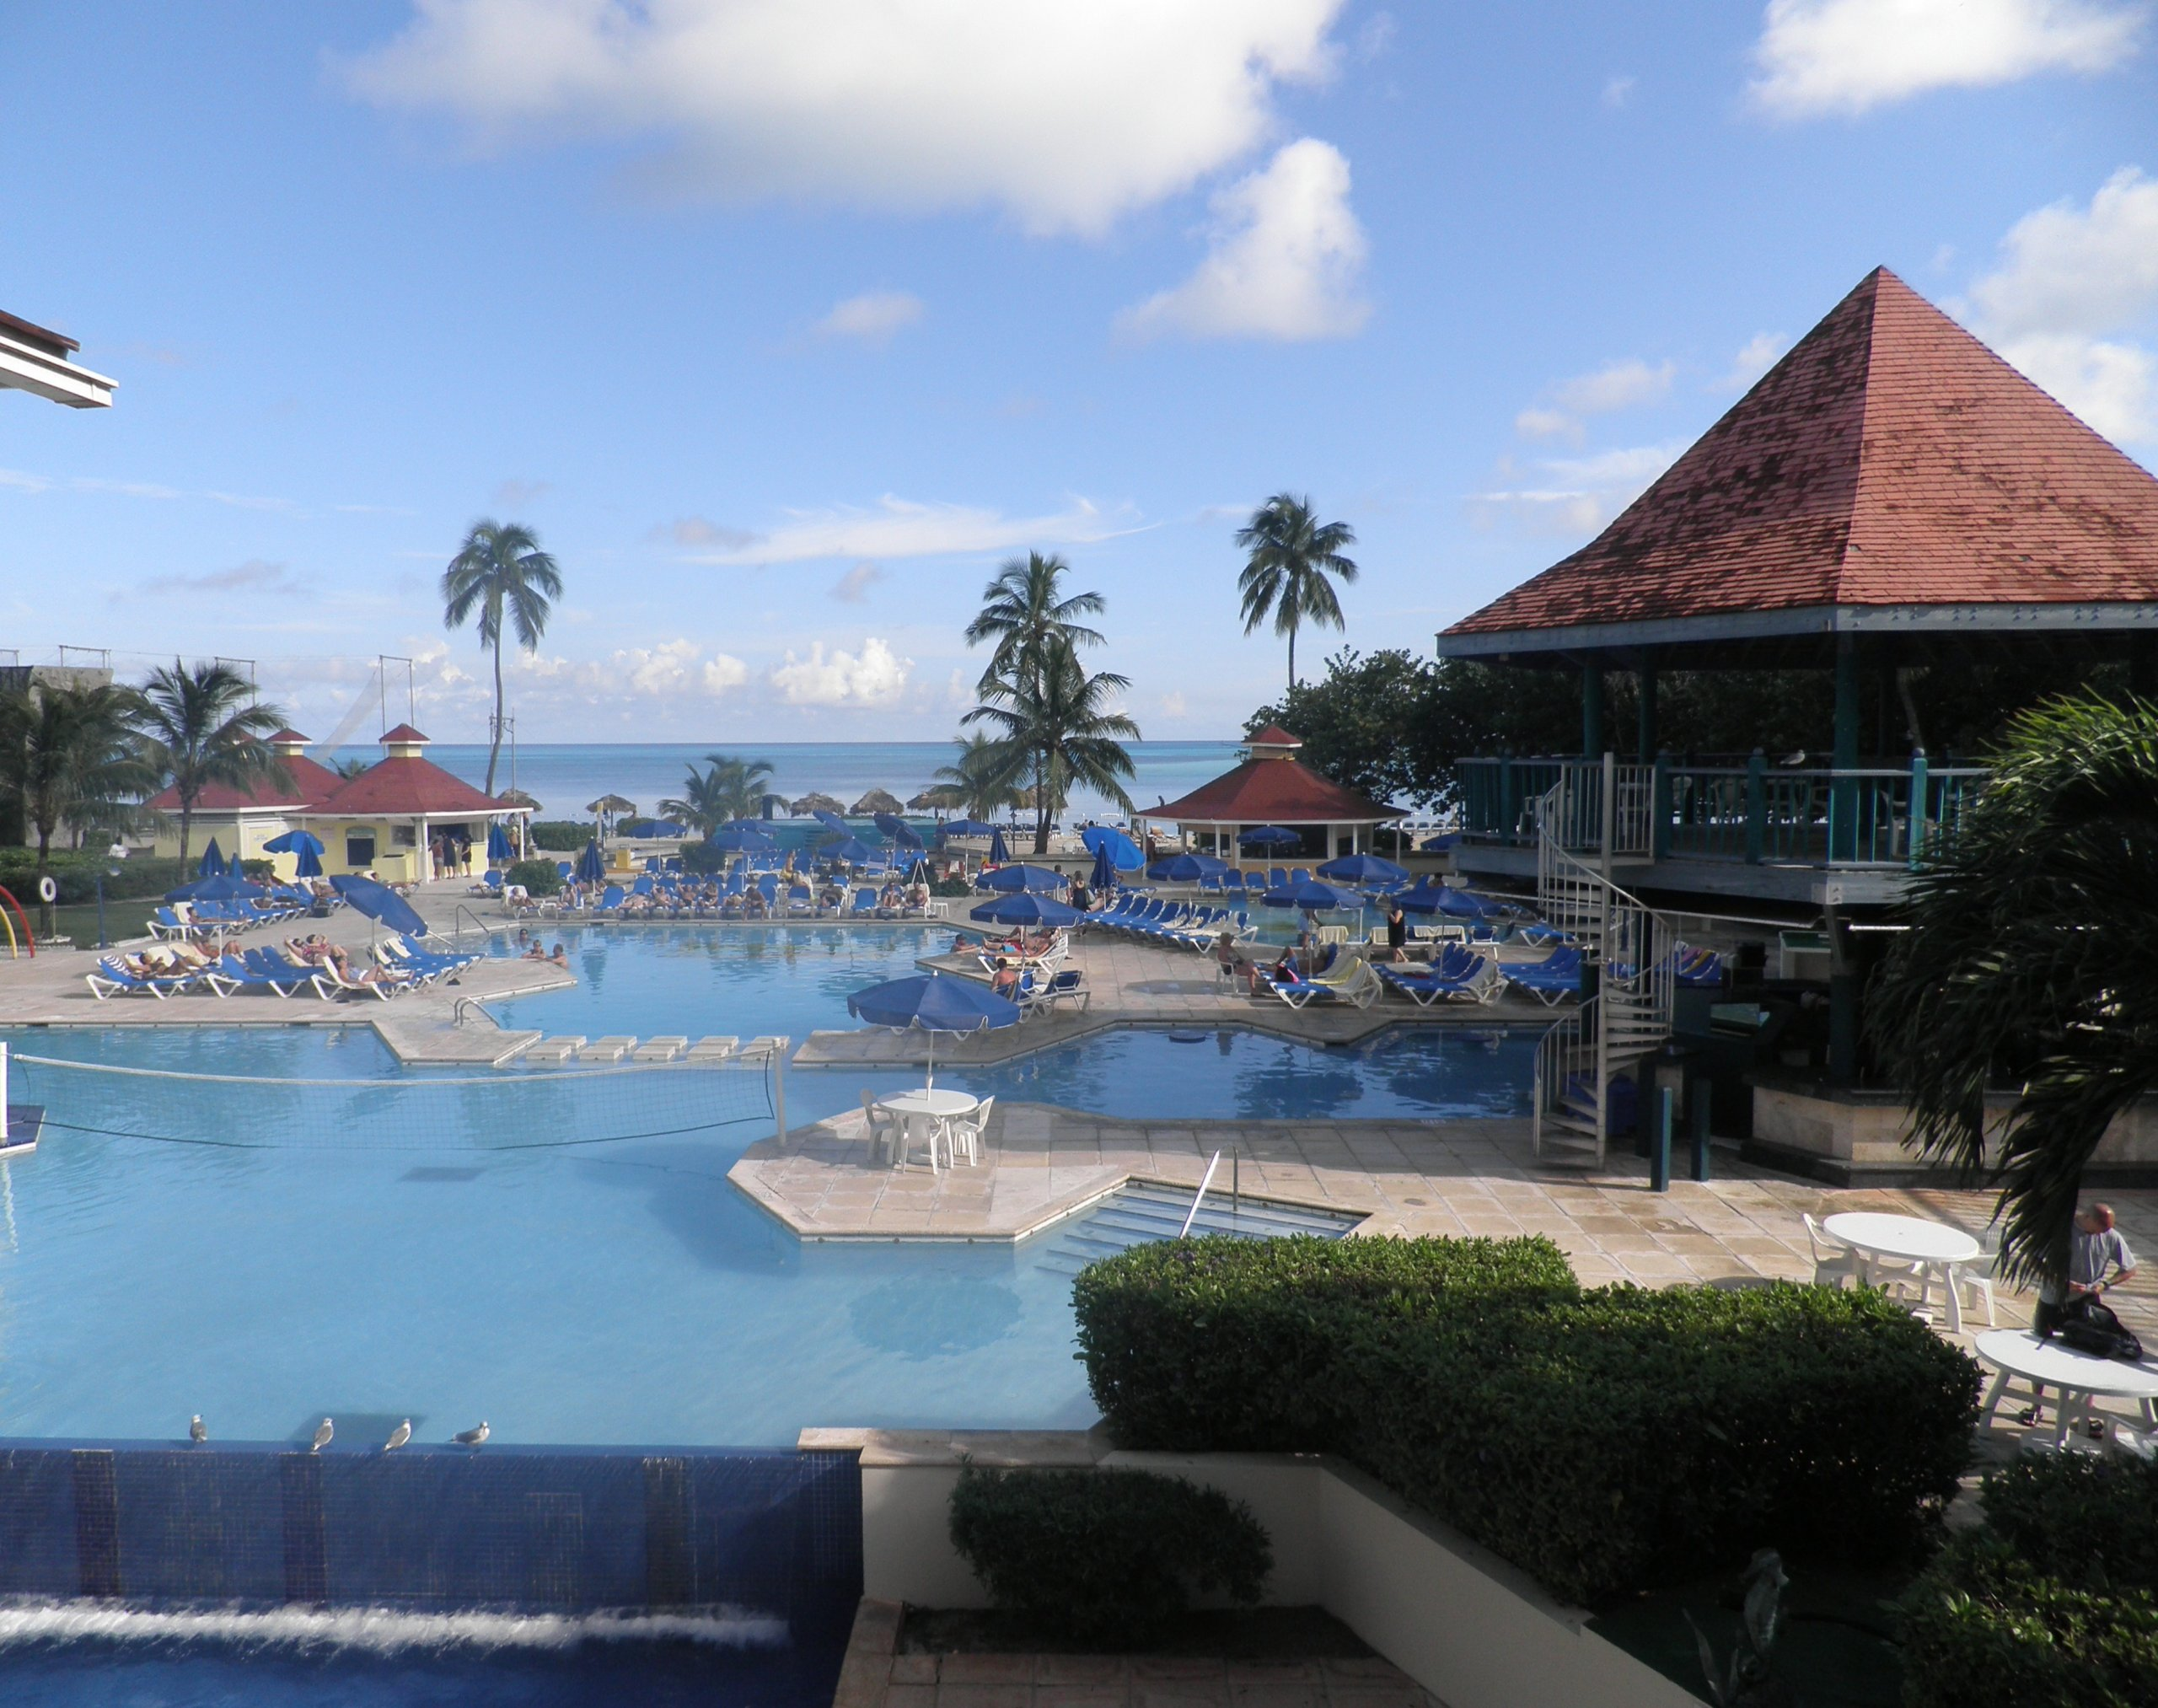 Hotel Pool and Beach